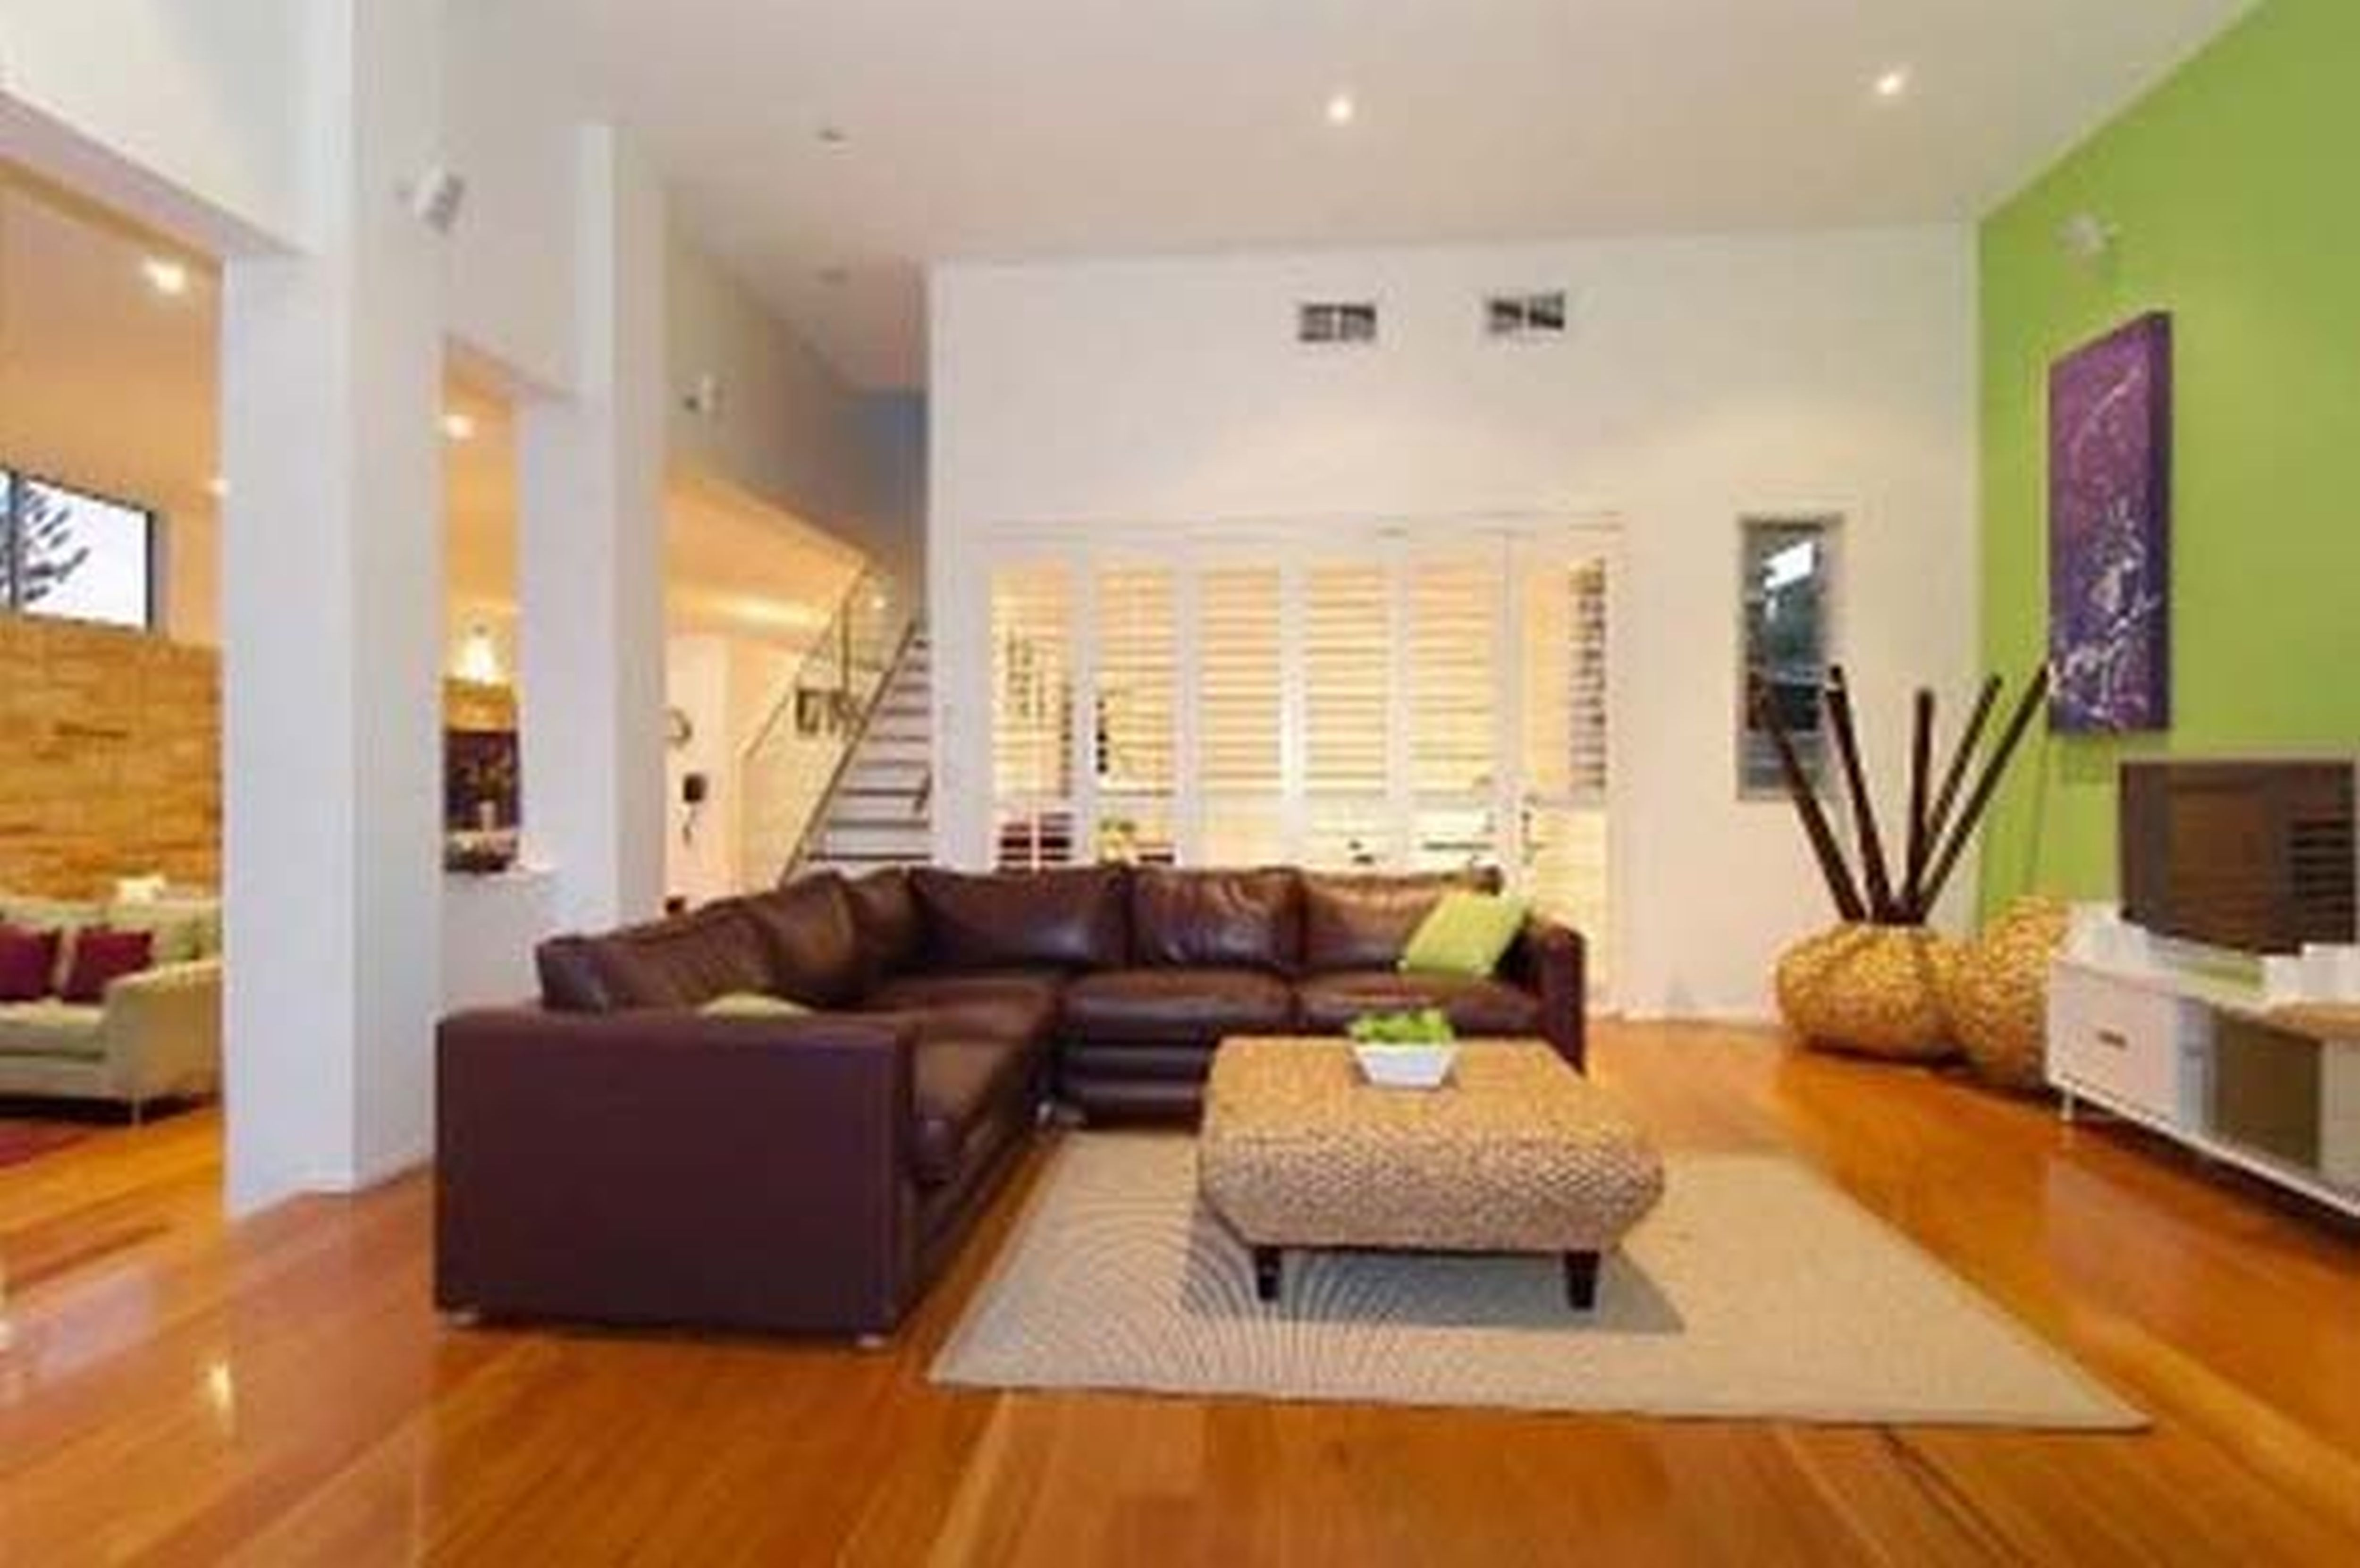 Designing Living Room Living Room Interior Design Apartment Modern Max Scene With All